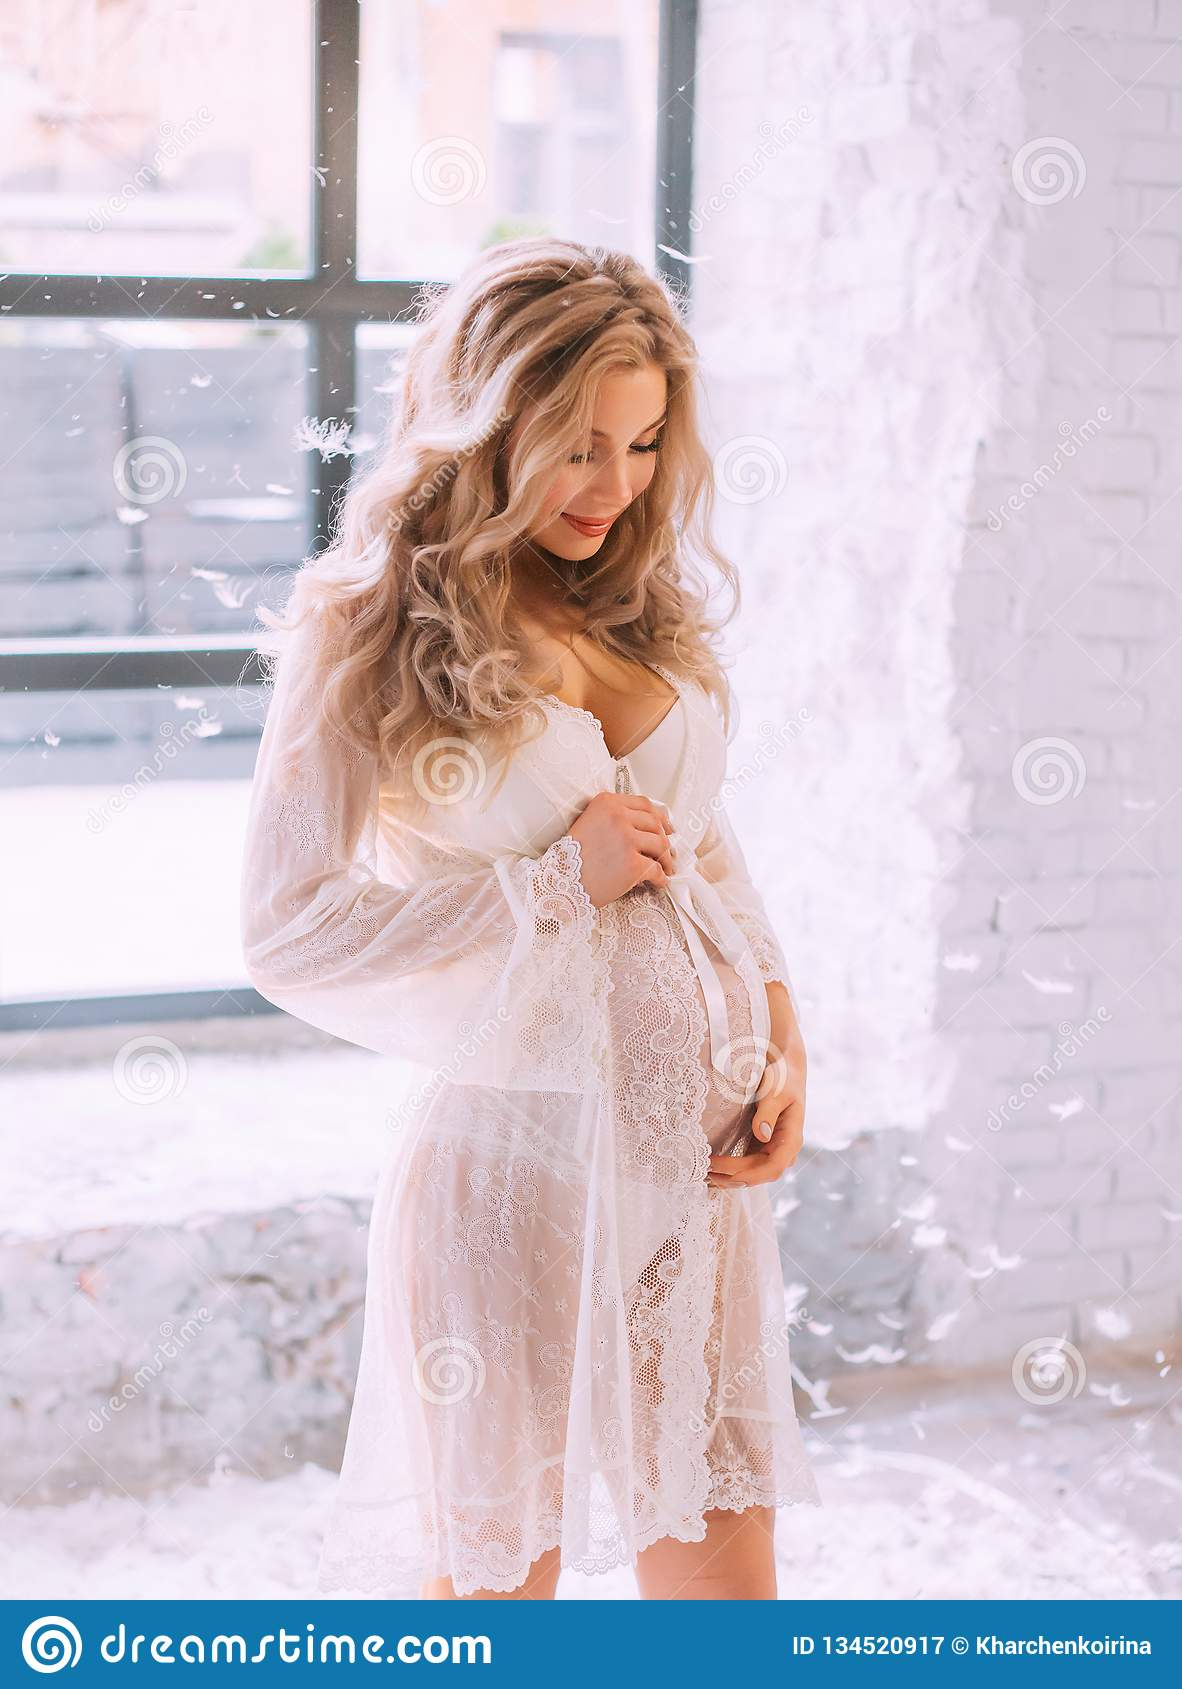 Attractive Pregnant Girl With Blomd Curly Hair In Elegant